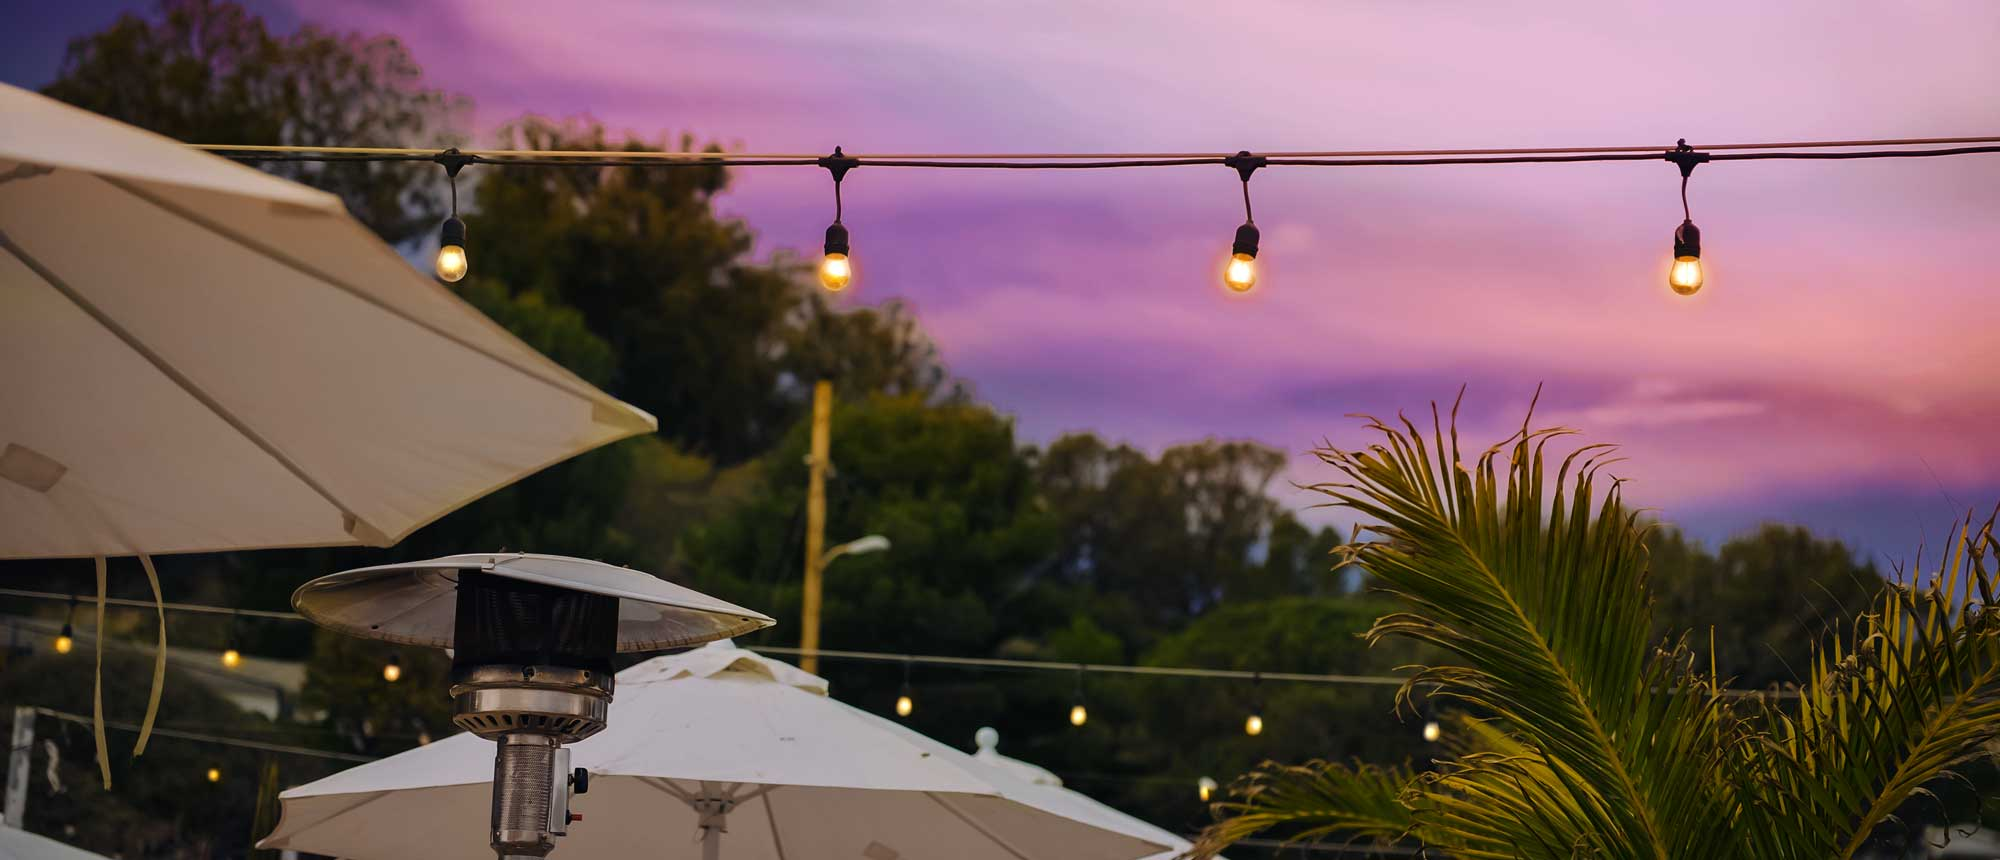 Grow your Business with Outdoor Lighting